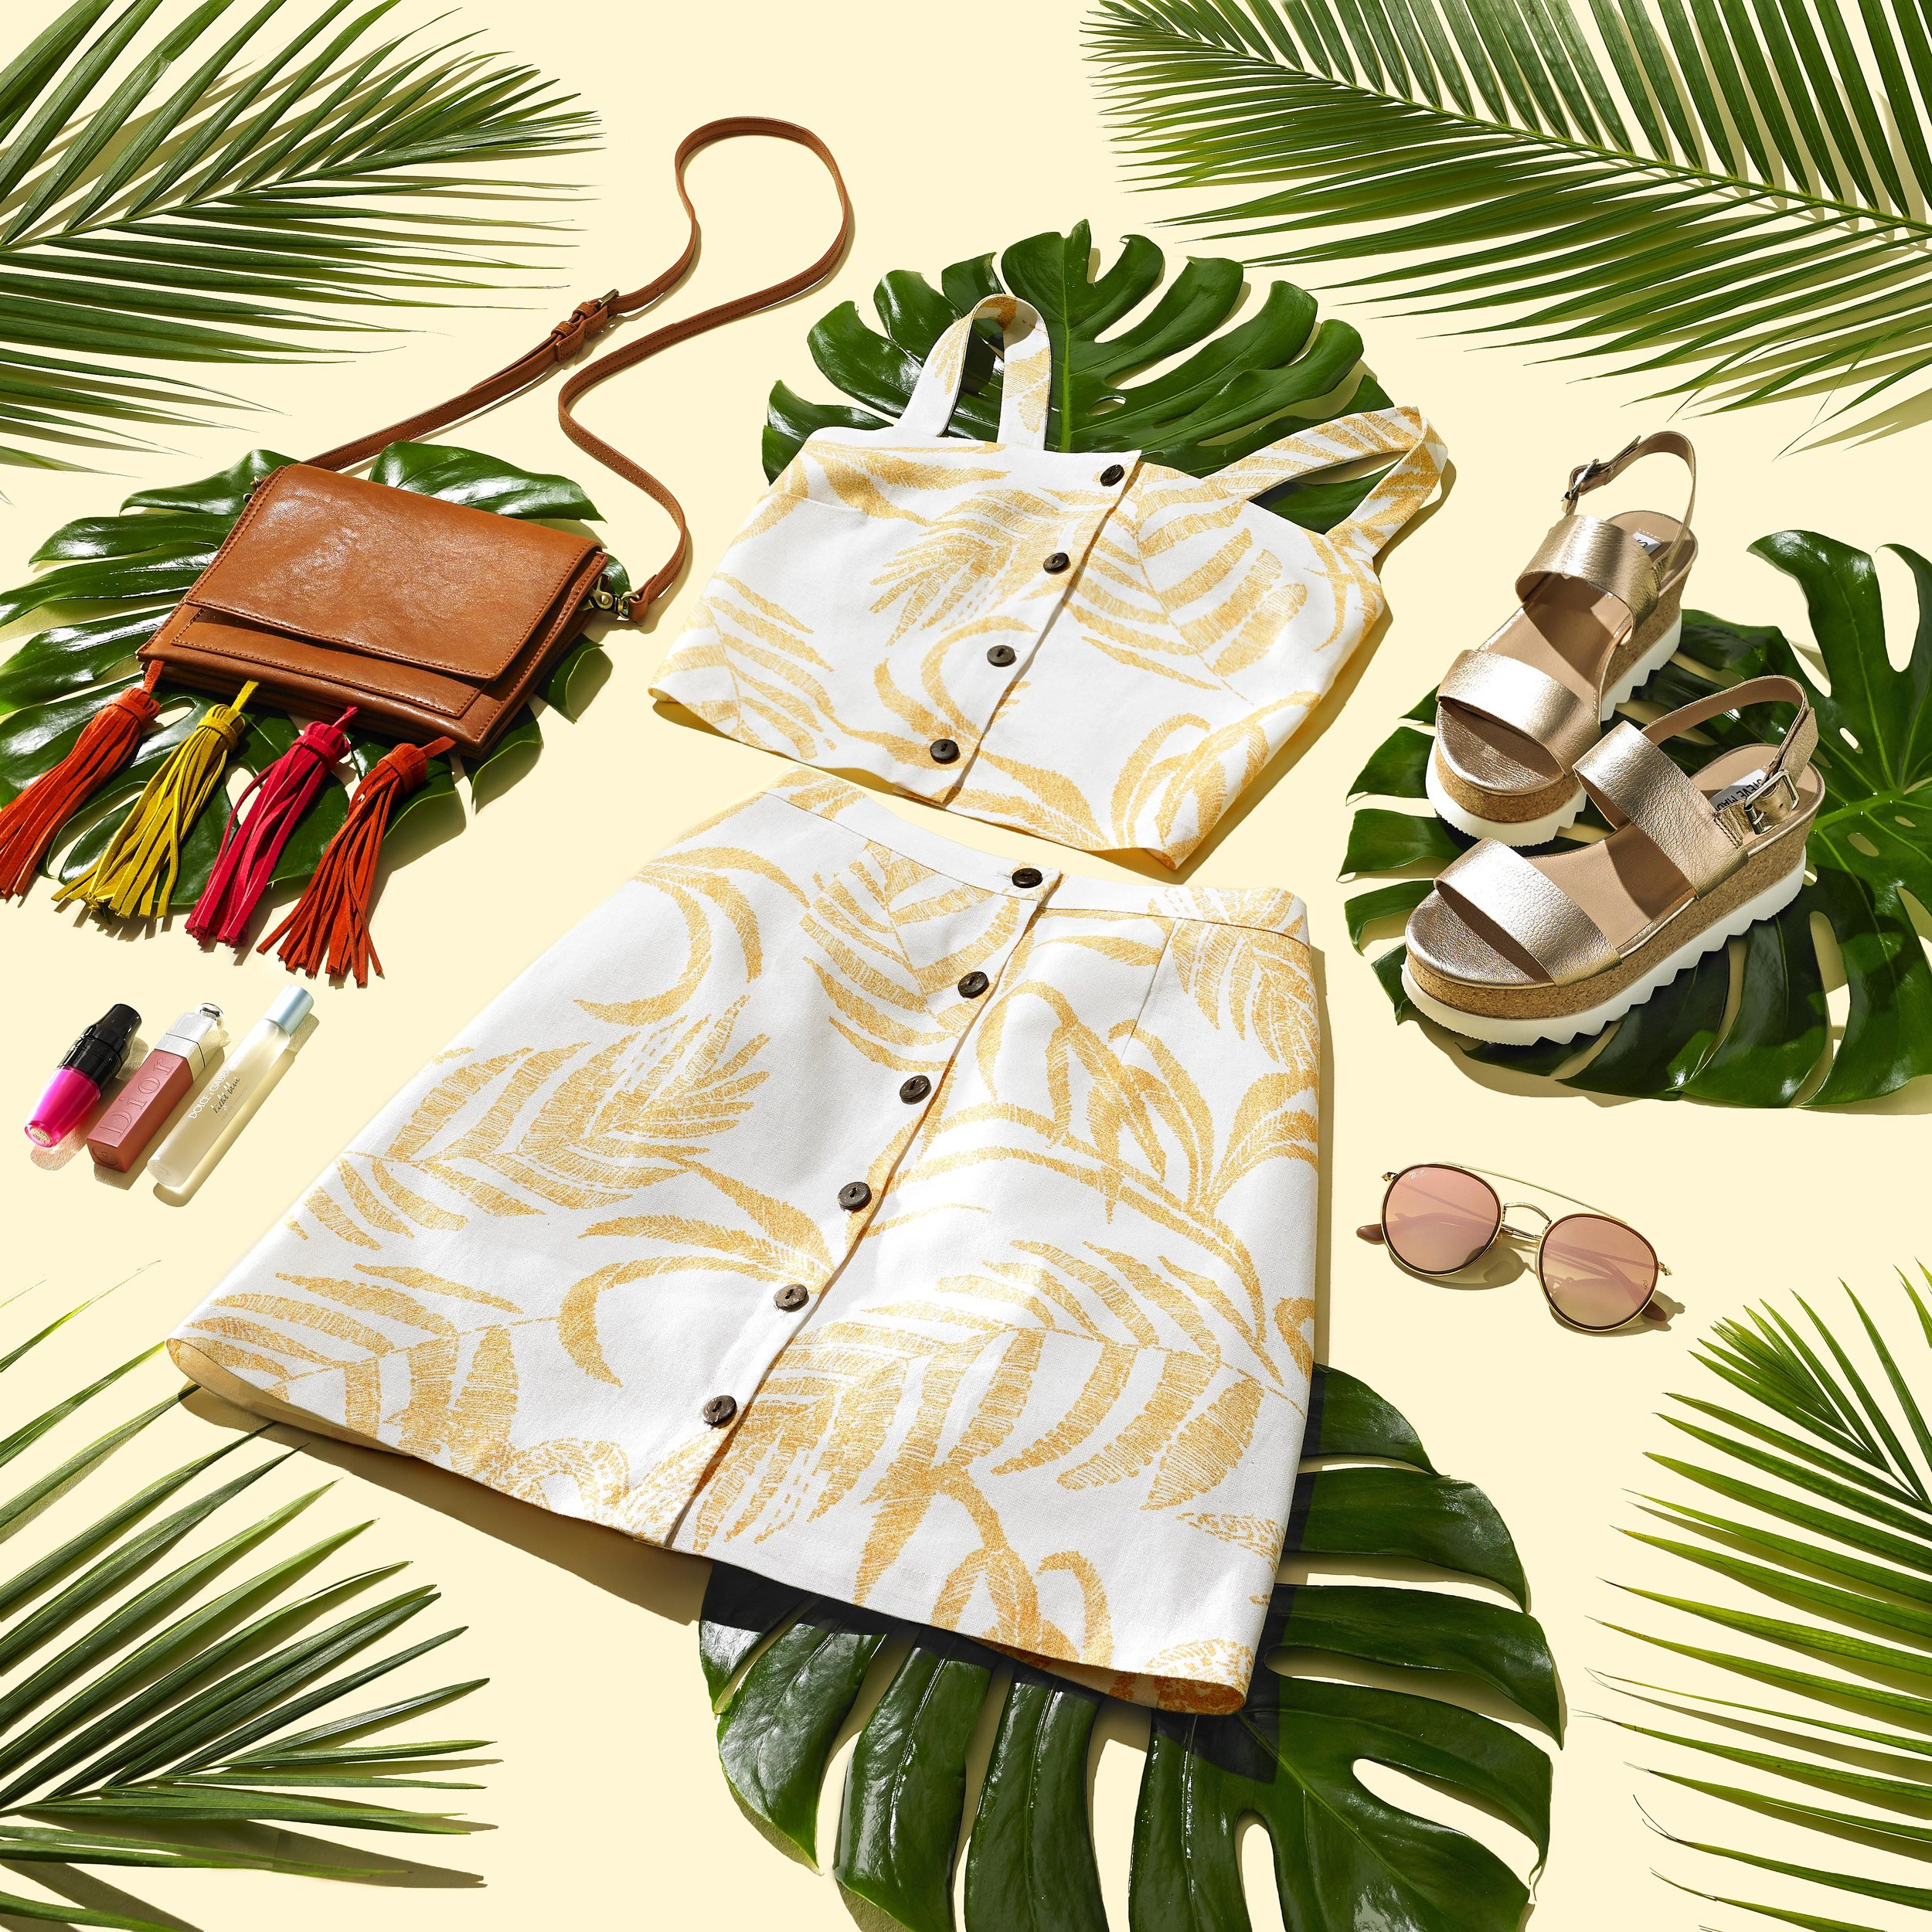 social media content, off figure fashion, fashion, photography, still life photography, shoes, handbag, cosmetics, beauty, accessories, sunglasses, dress, summer, palm leaves